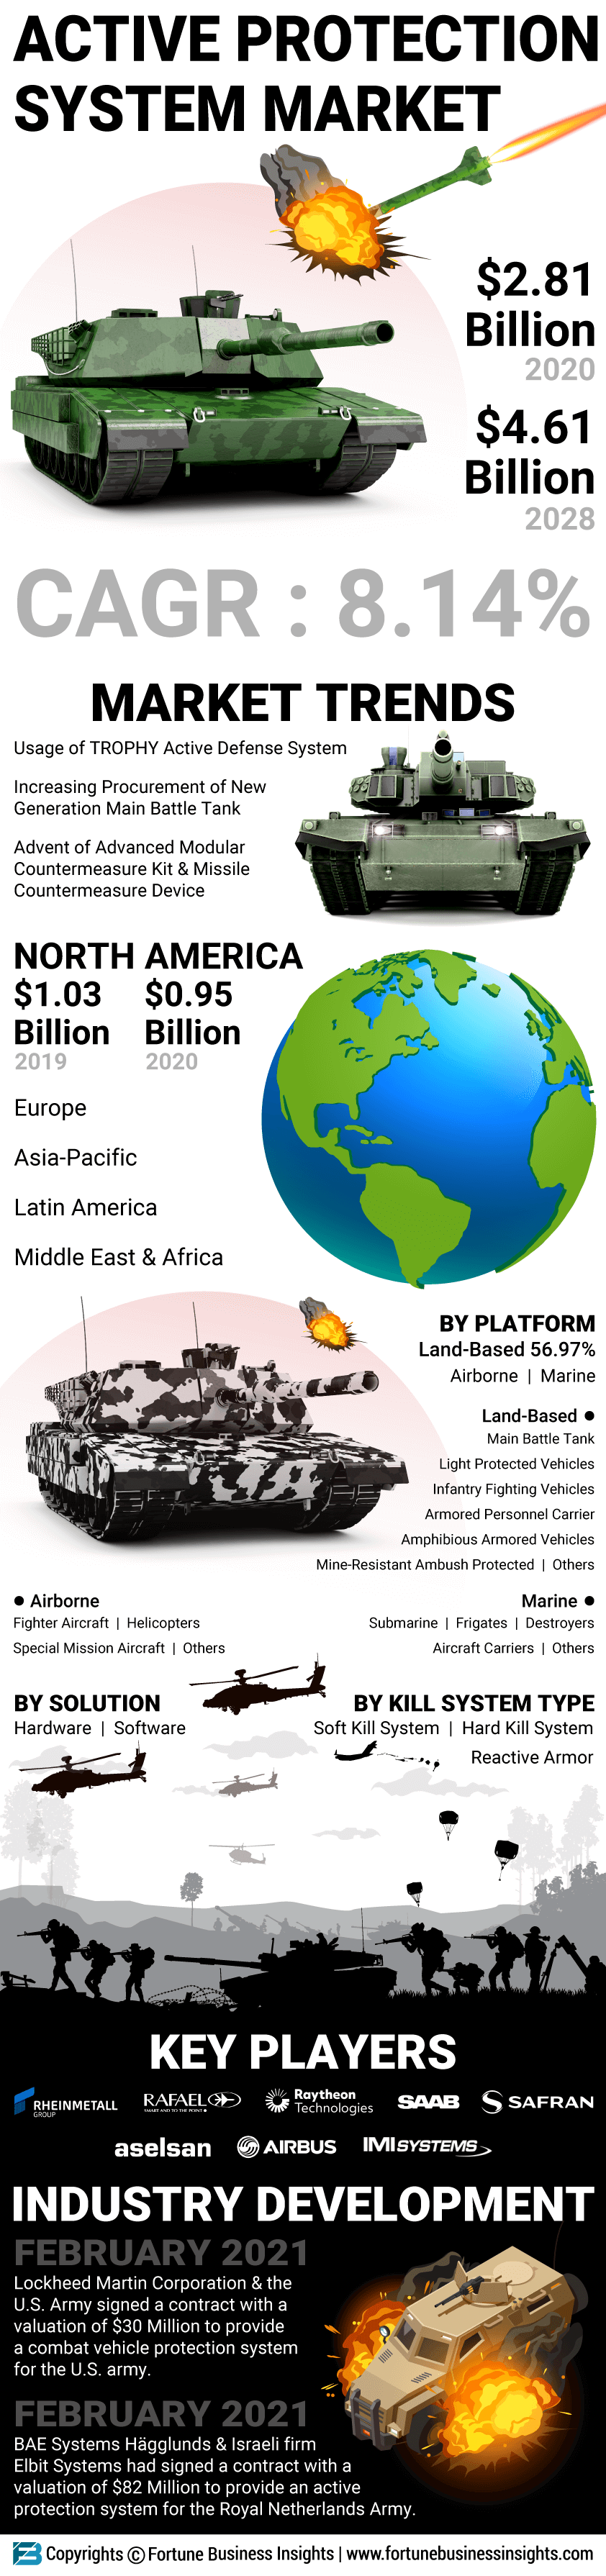 Active Protection System Market